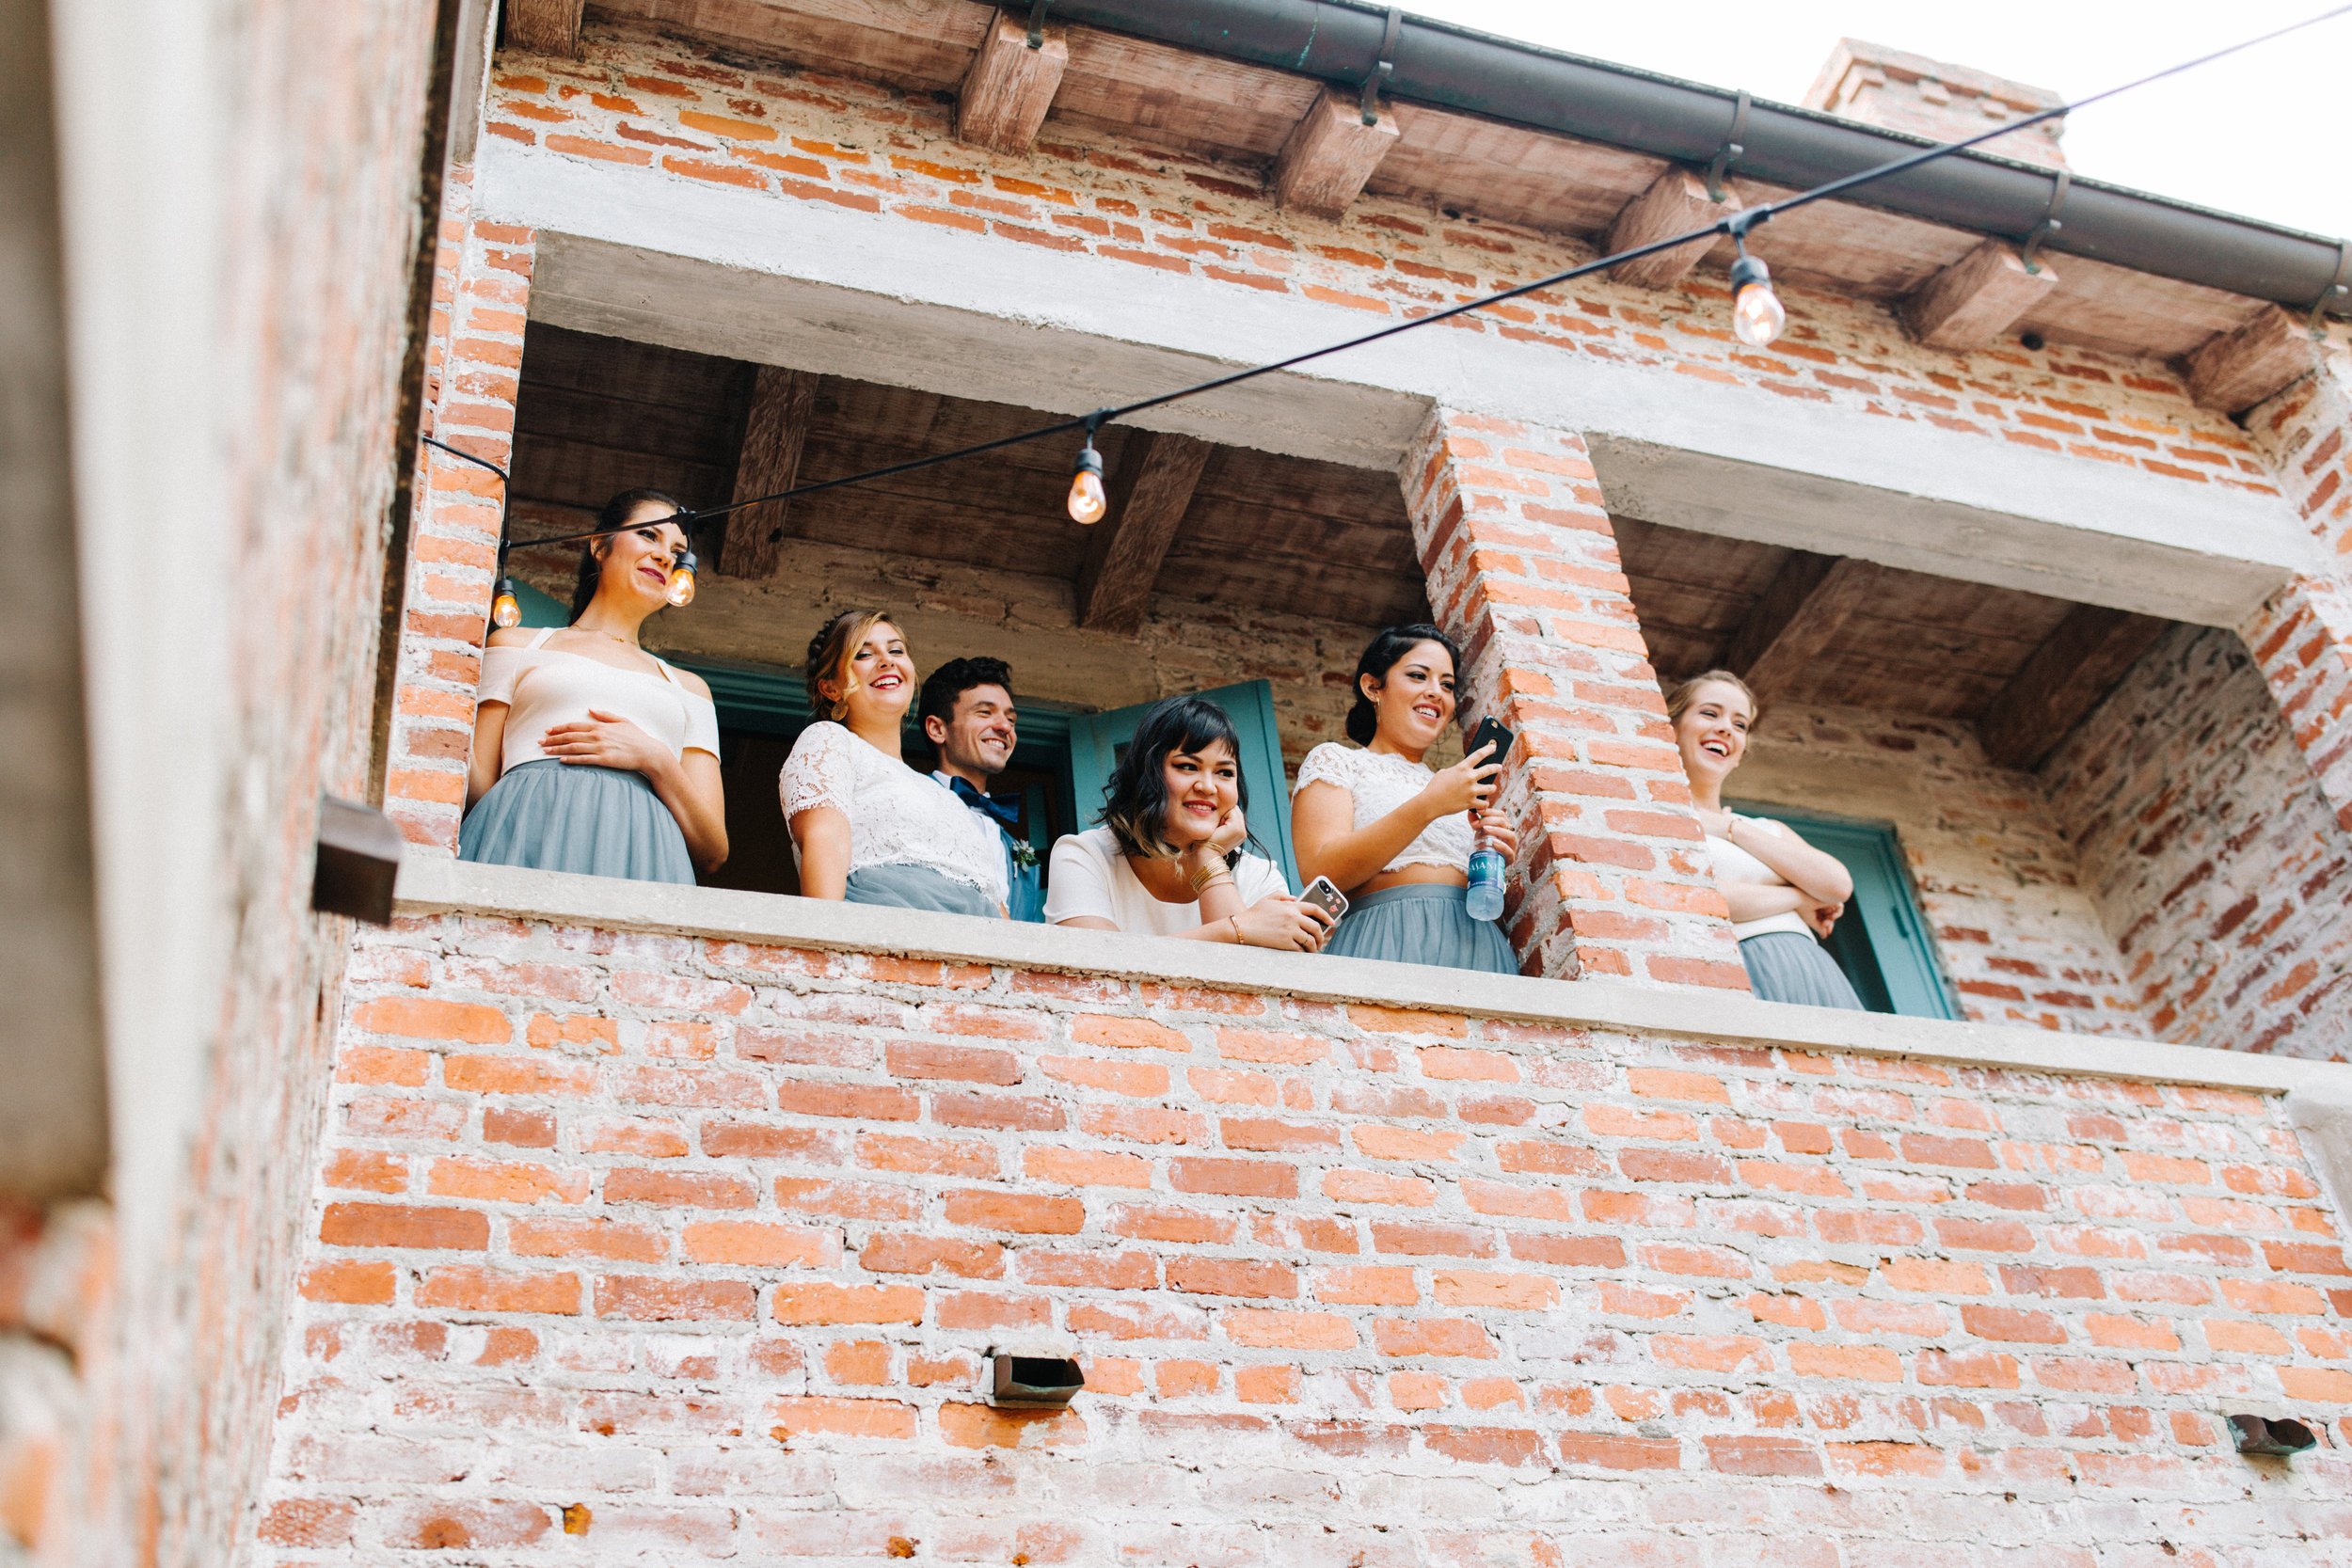 Orlando-Wedding-Photographer_Wedding-at-Casa-Feliz_Kaylin-and-Evan_Orlando-FL0256.jpg